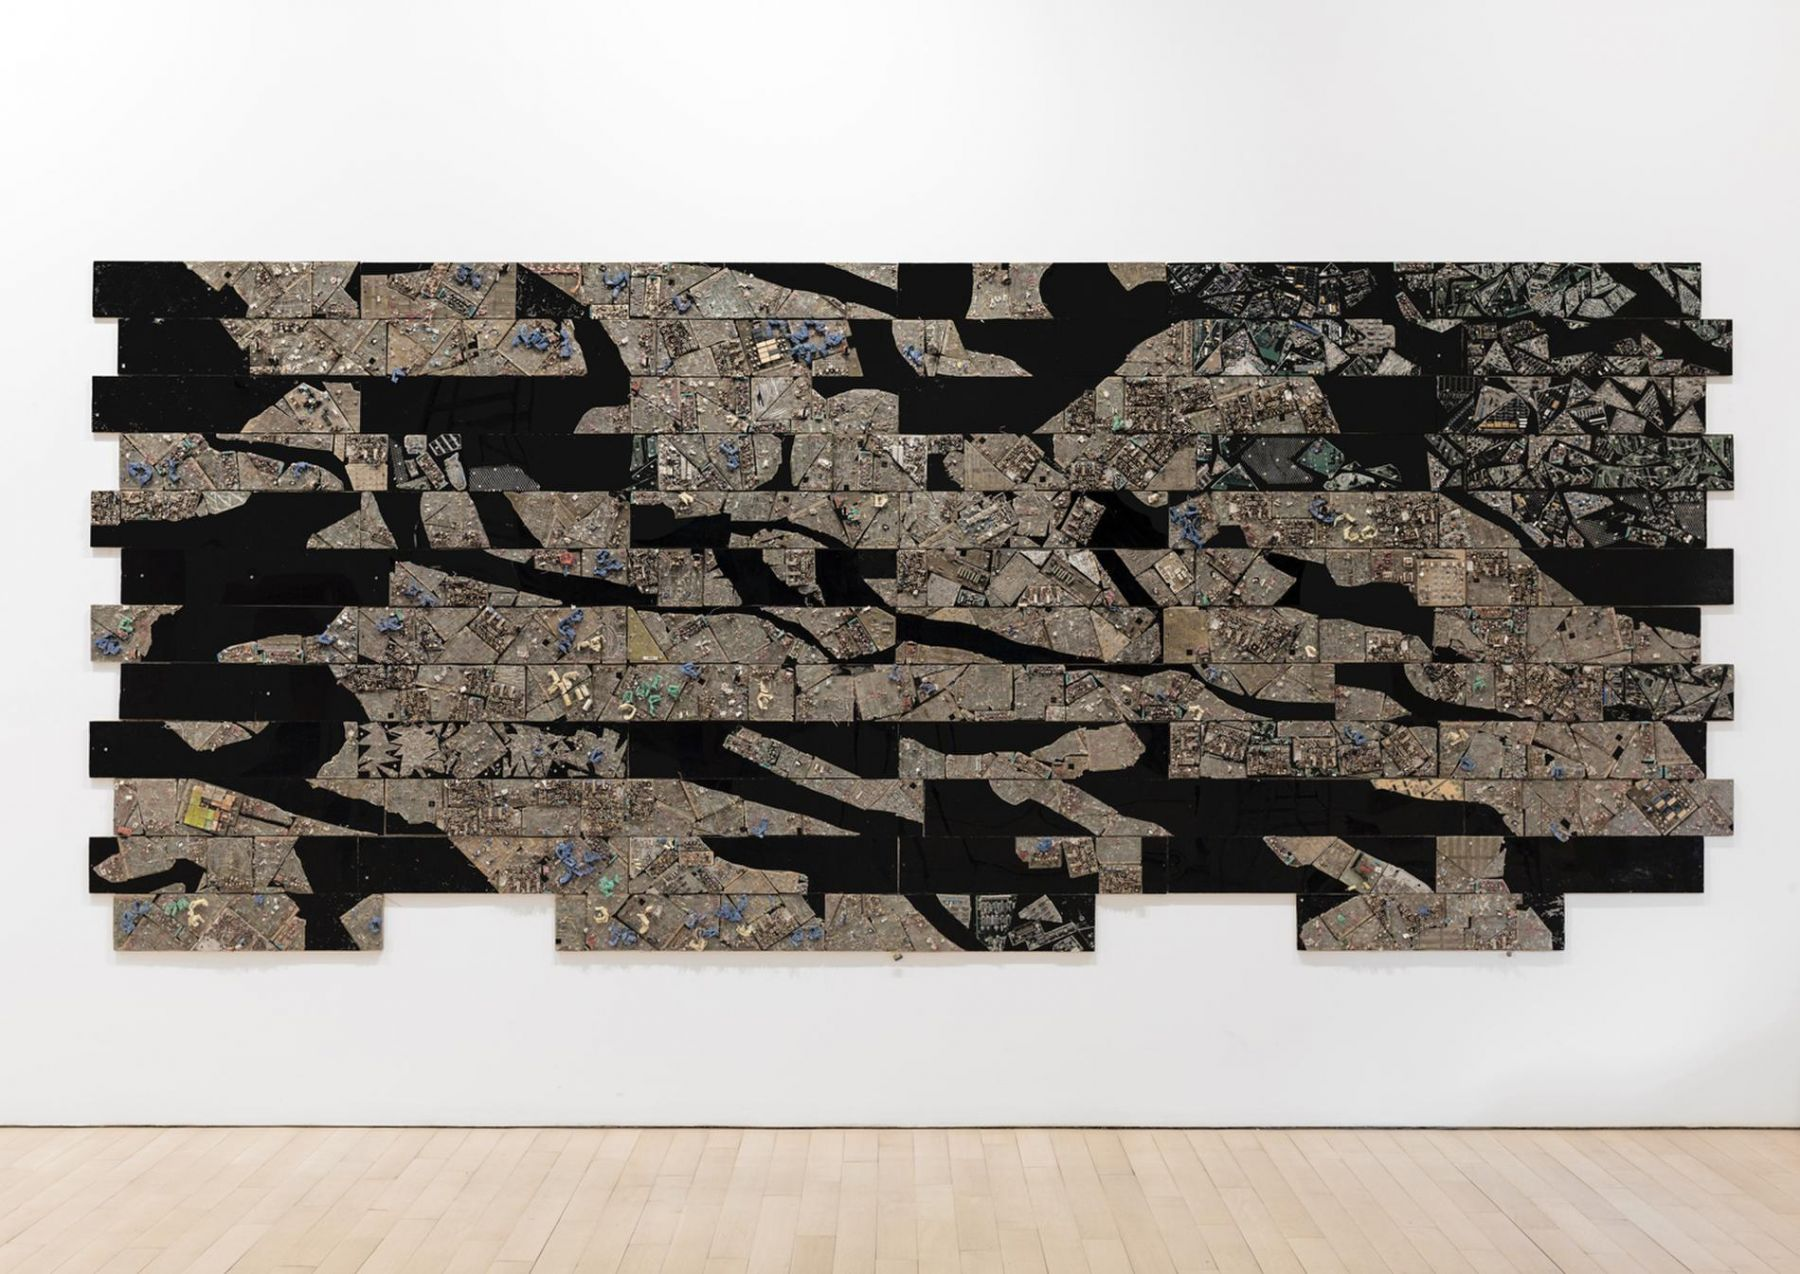 , ELIAS SIME, Tightrope 3, 2009 - 14. Reclaimed electrical components and fiberglass on panel, 81 1/2 x 195 in. (207 x 495.3 cm)